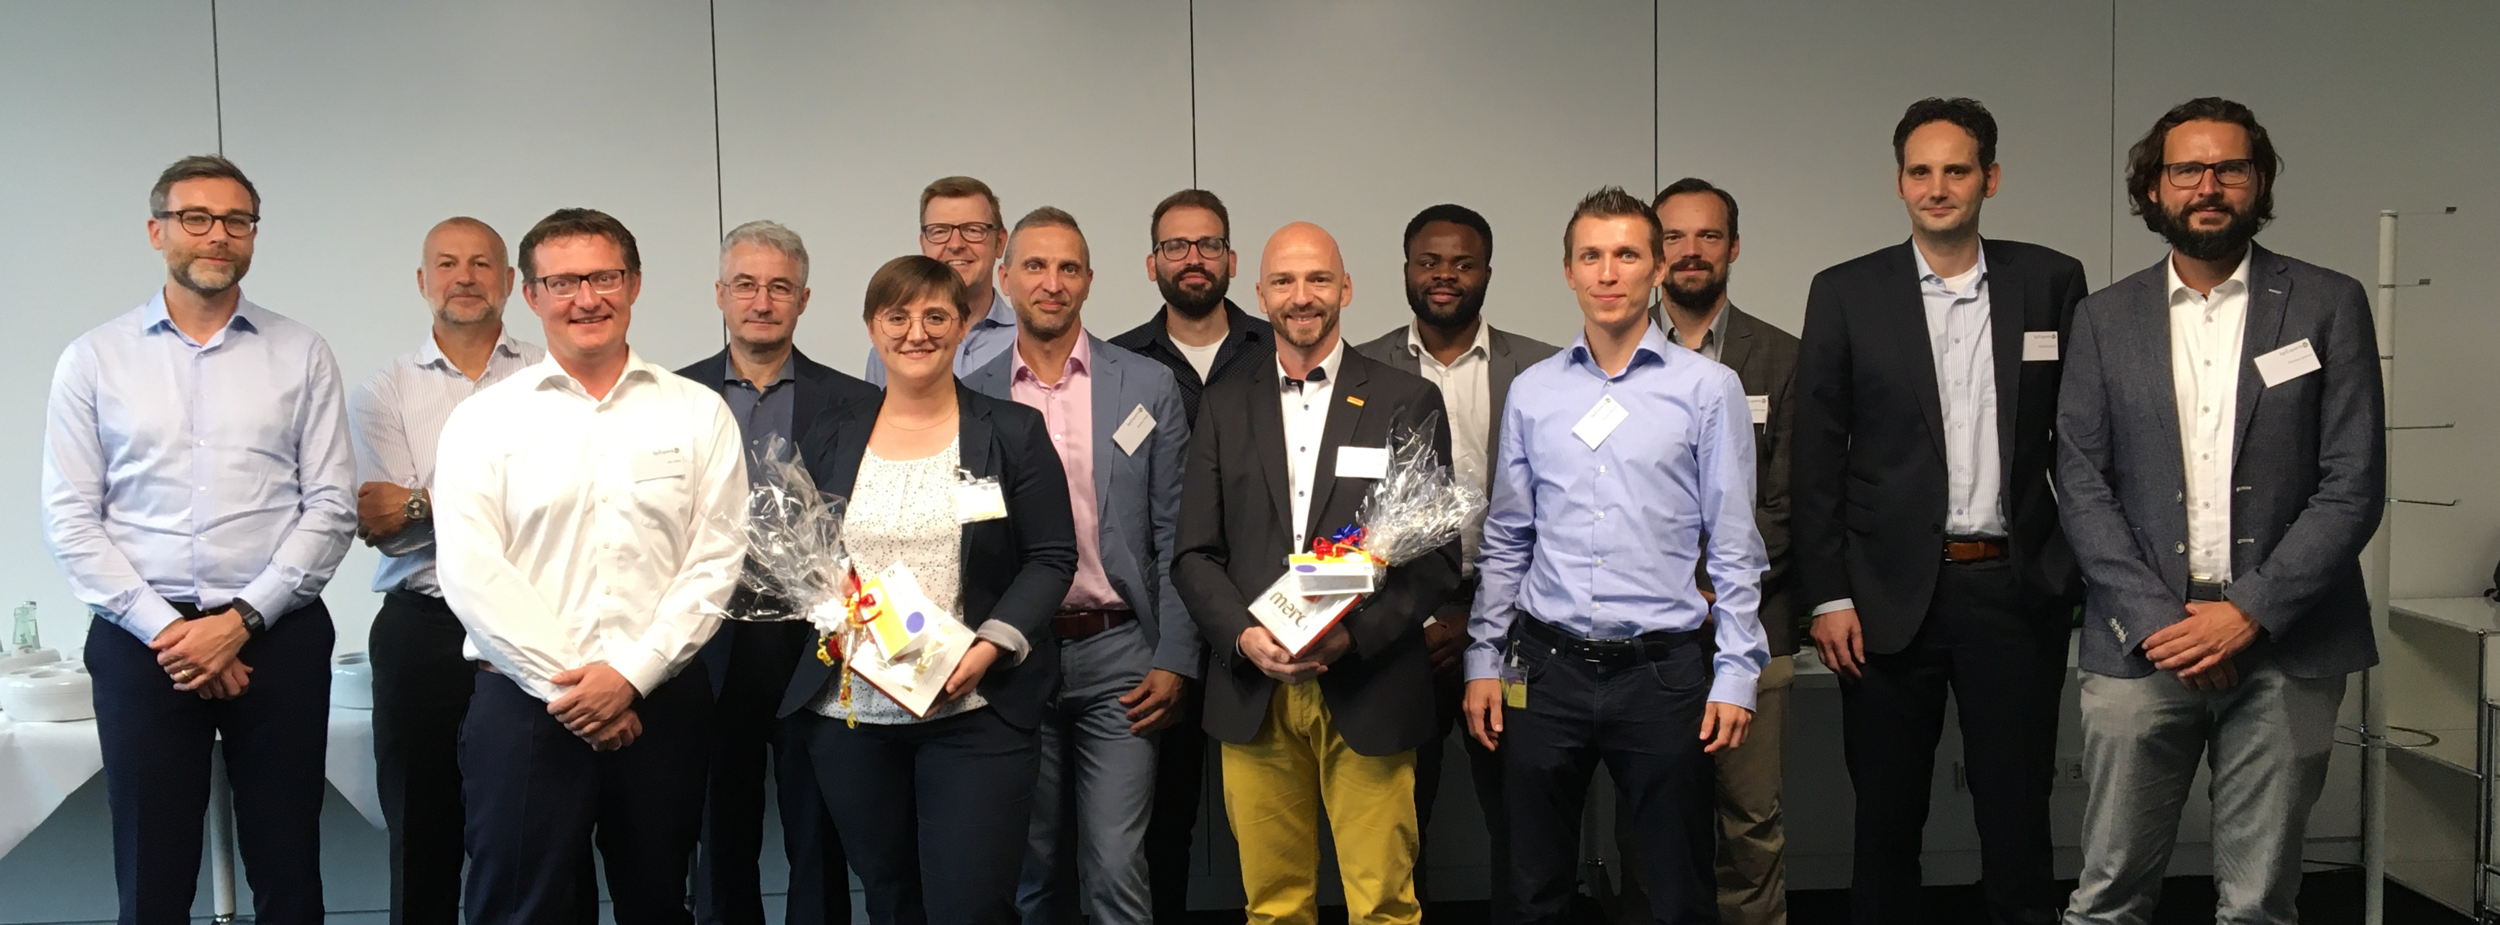 Participants of bpExpert's 7th annual customer event in Darmstadt